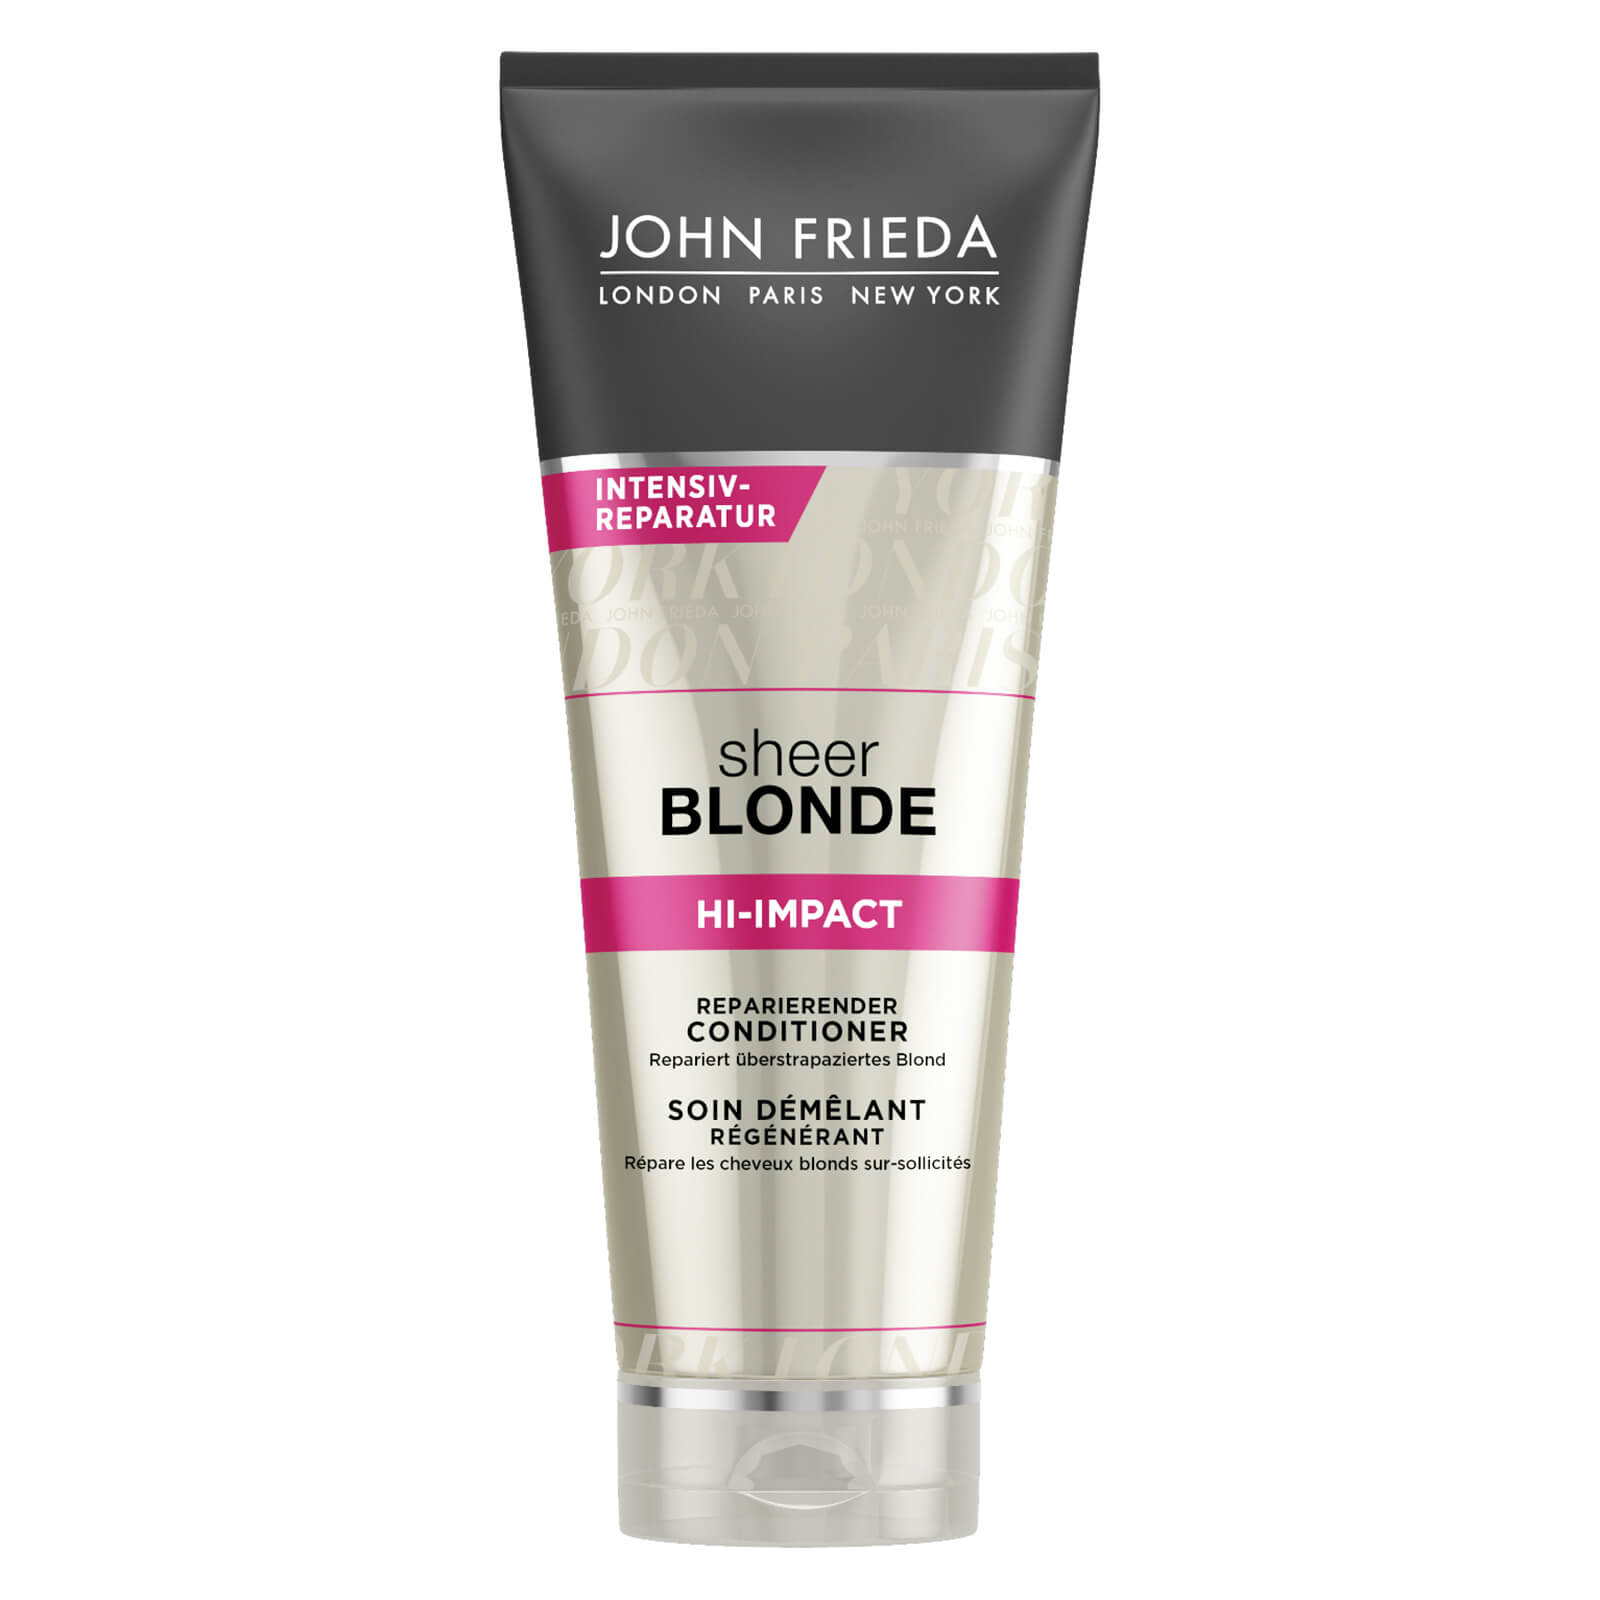 John Frieda Sheer Blonde Conditioner